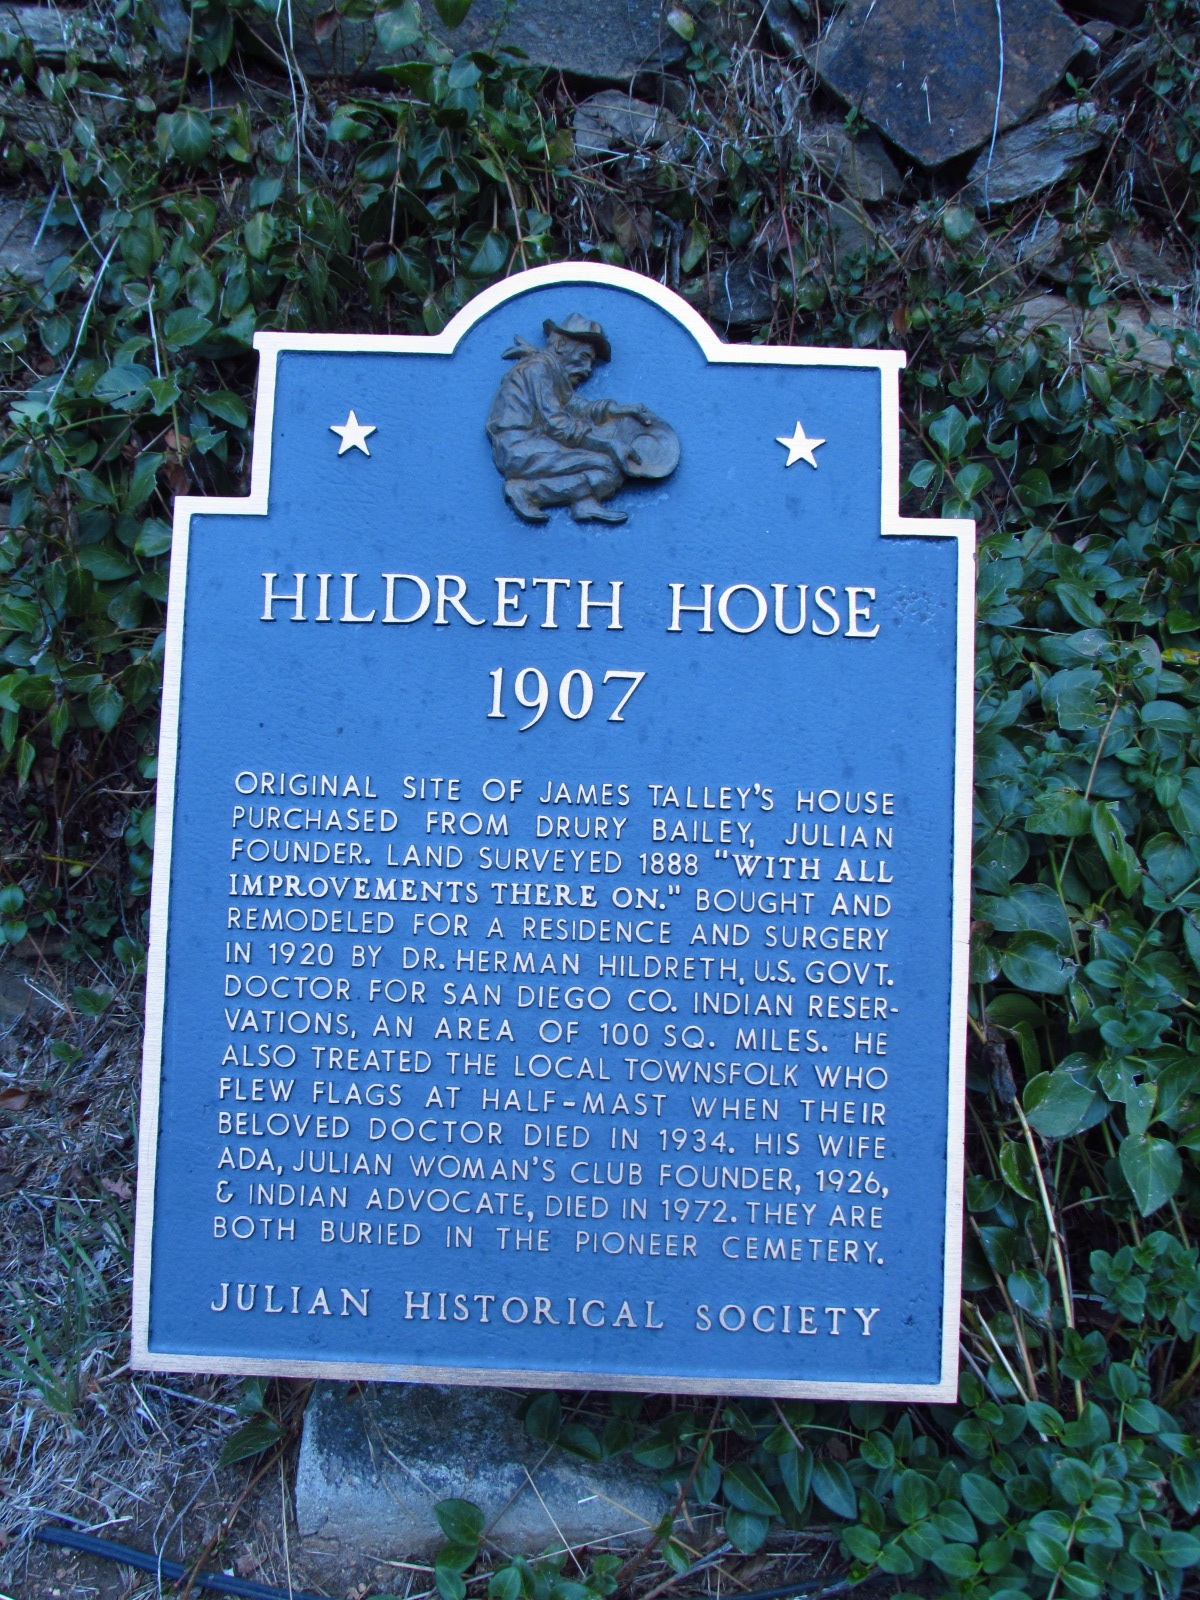 Julian Historical Society Hildreth House Sign